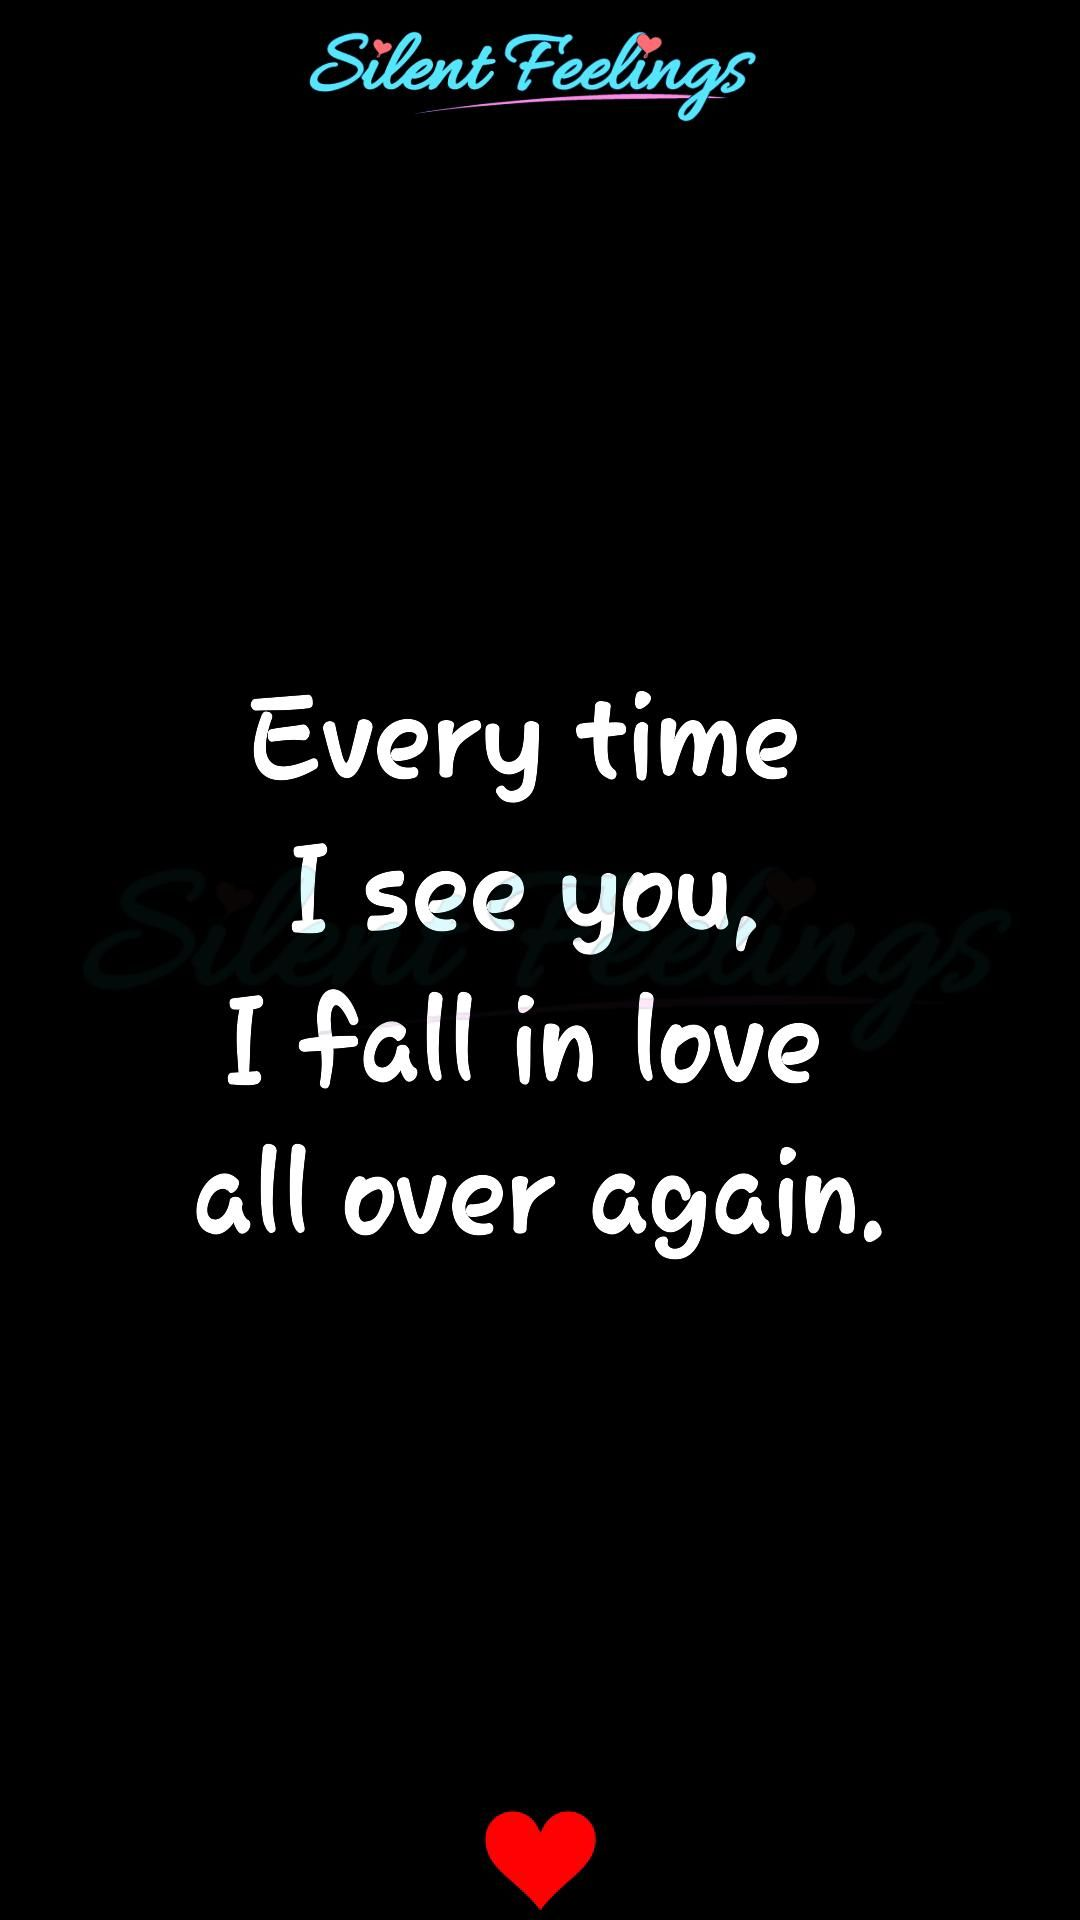 Every time I see you